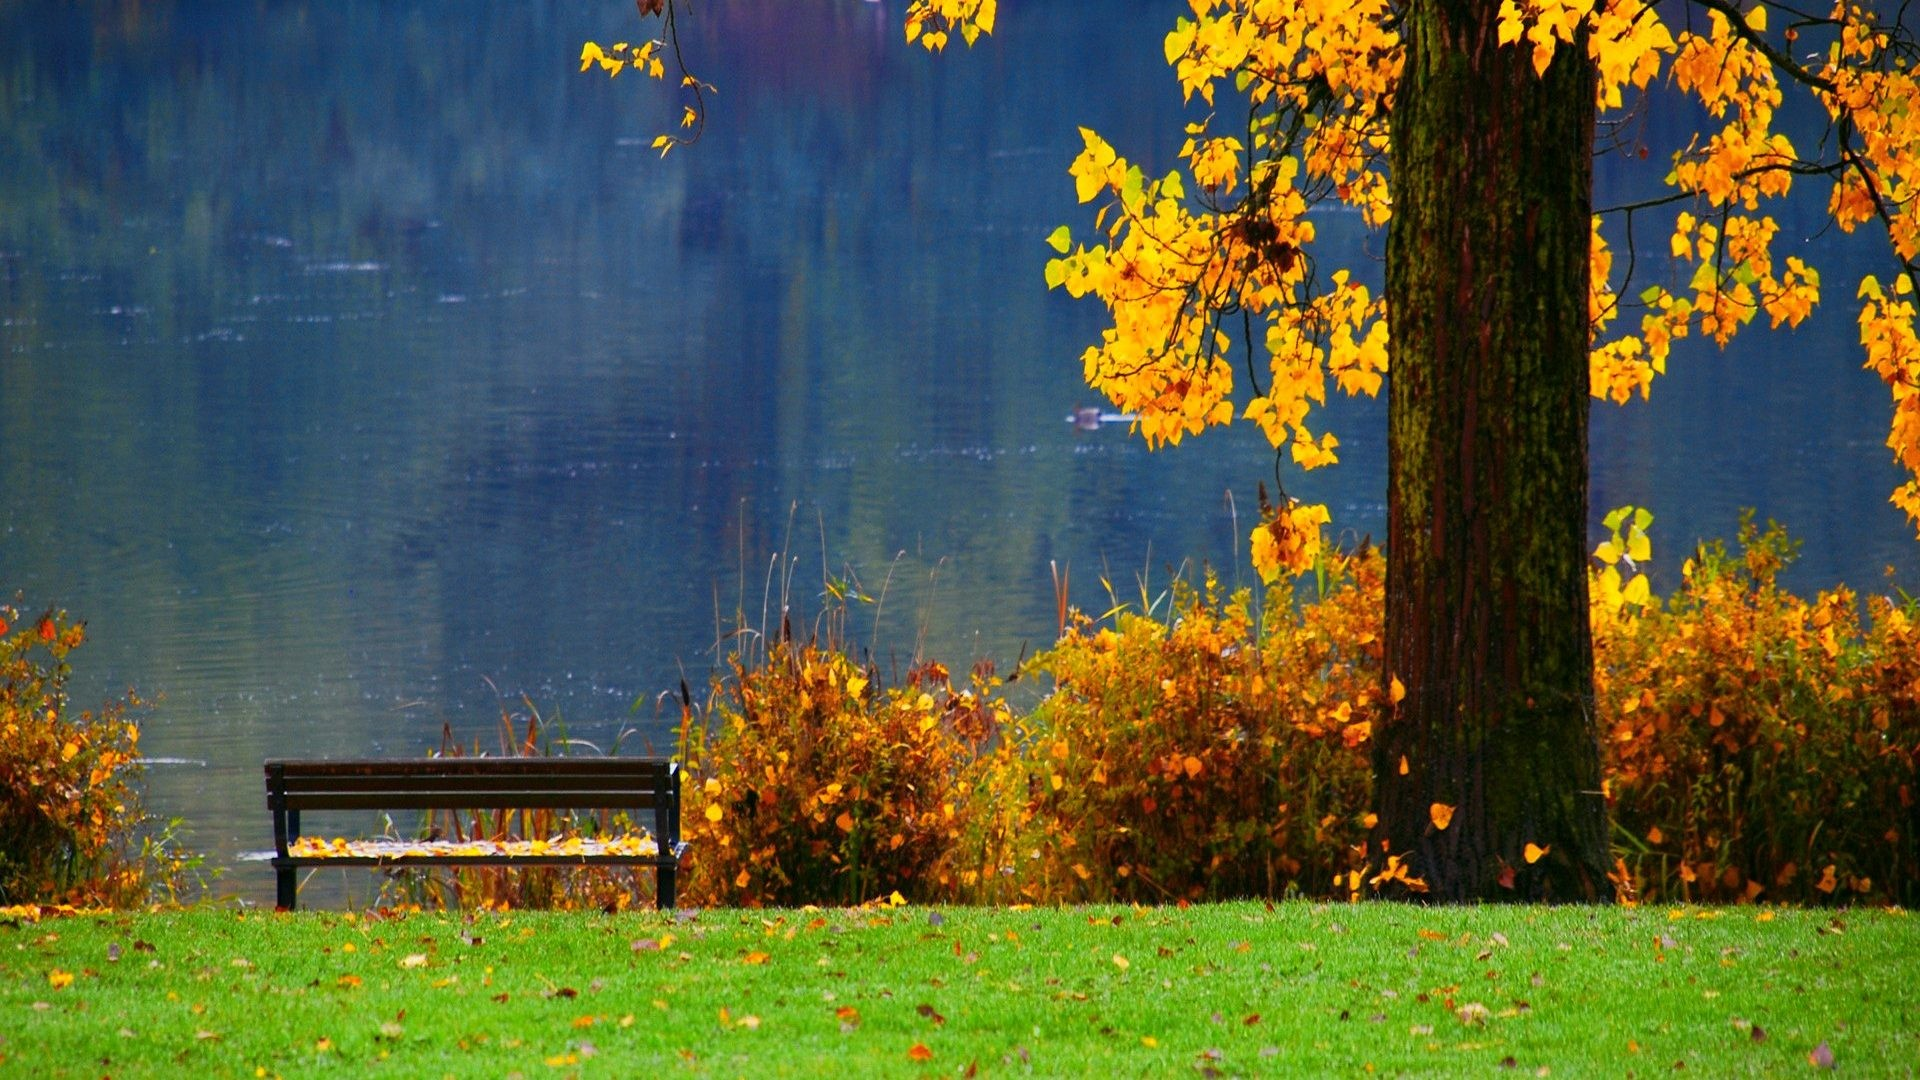 1920x1080 Walk Pretty Falling Lovely Fall Tree Rest Sunny Autumn Branches Lakeshore  Seat River Green Bushes Reflection Shore Beautiful Lake Grass Foliage  Greenery ...